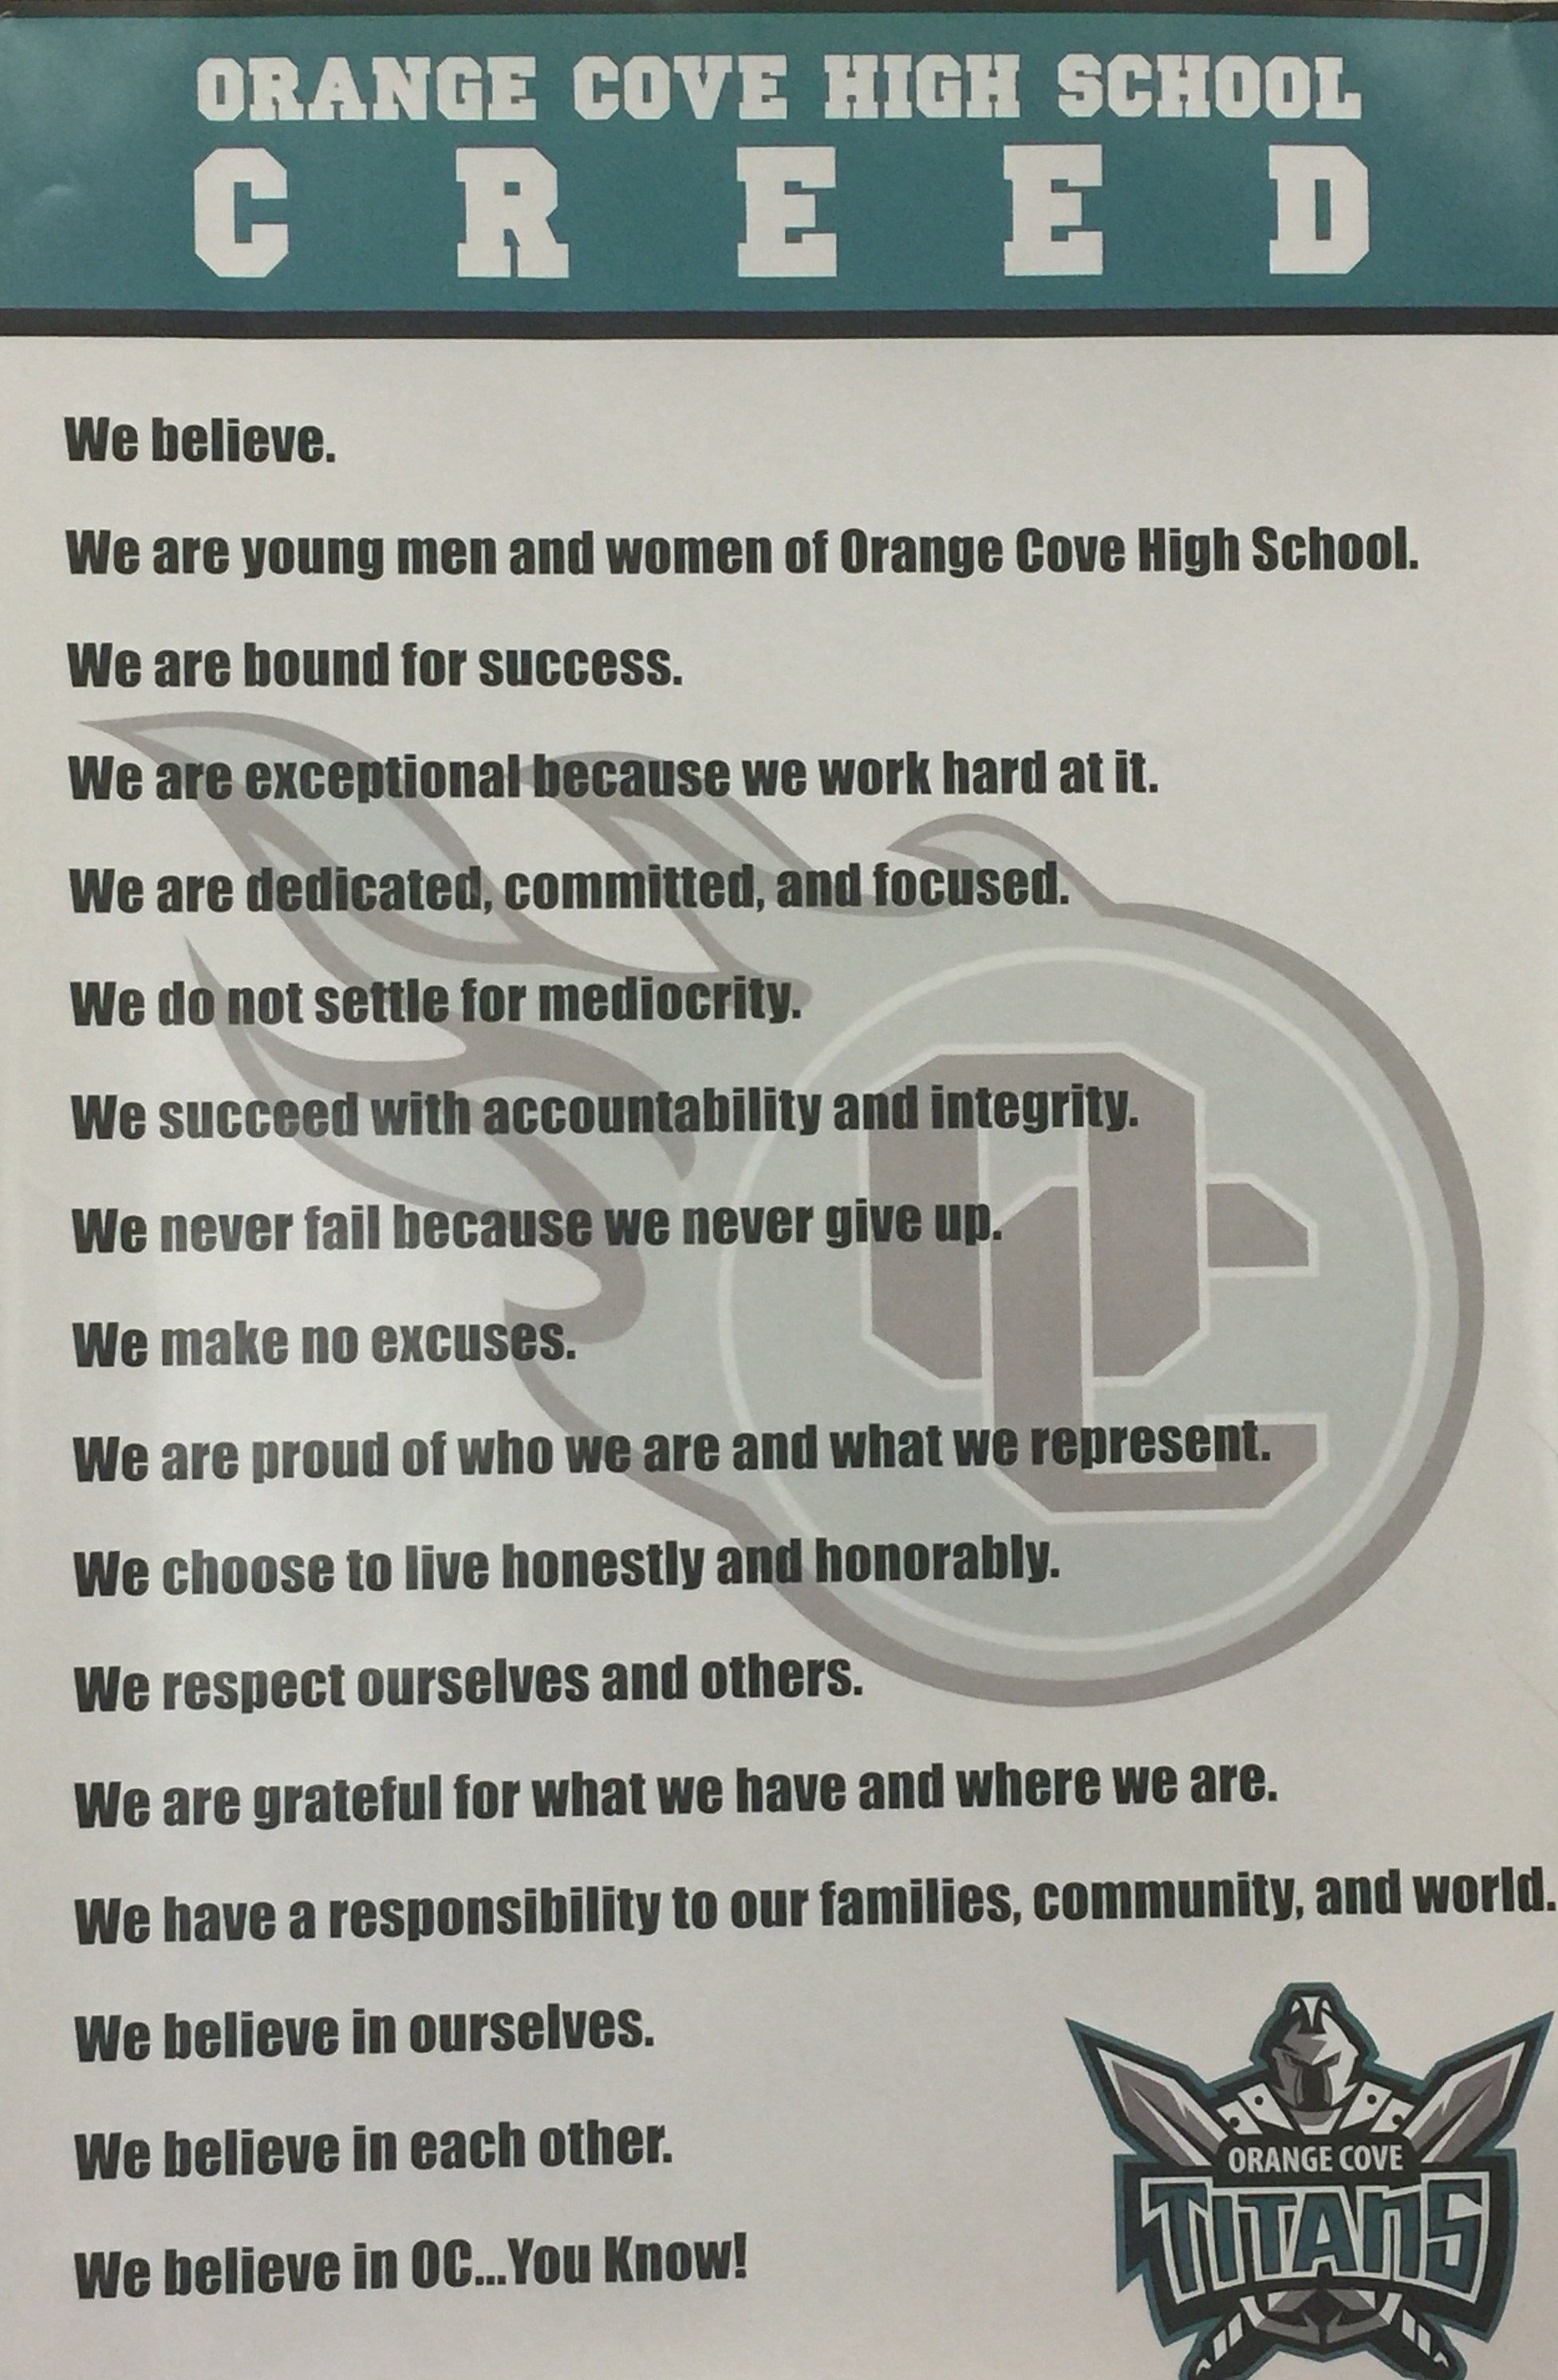 OCHS Creed